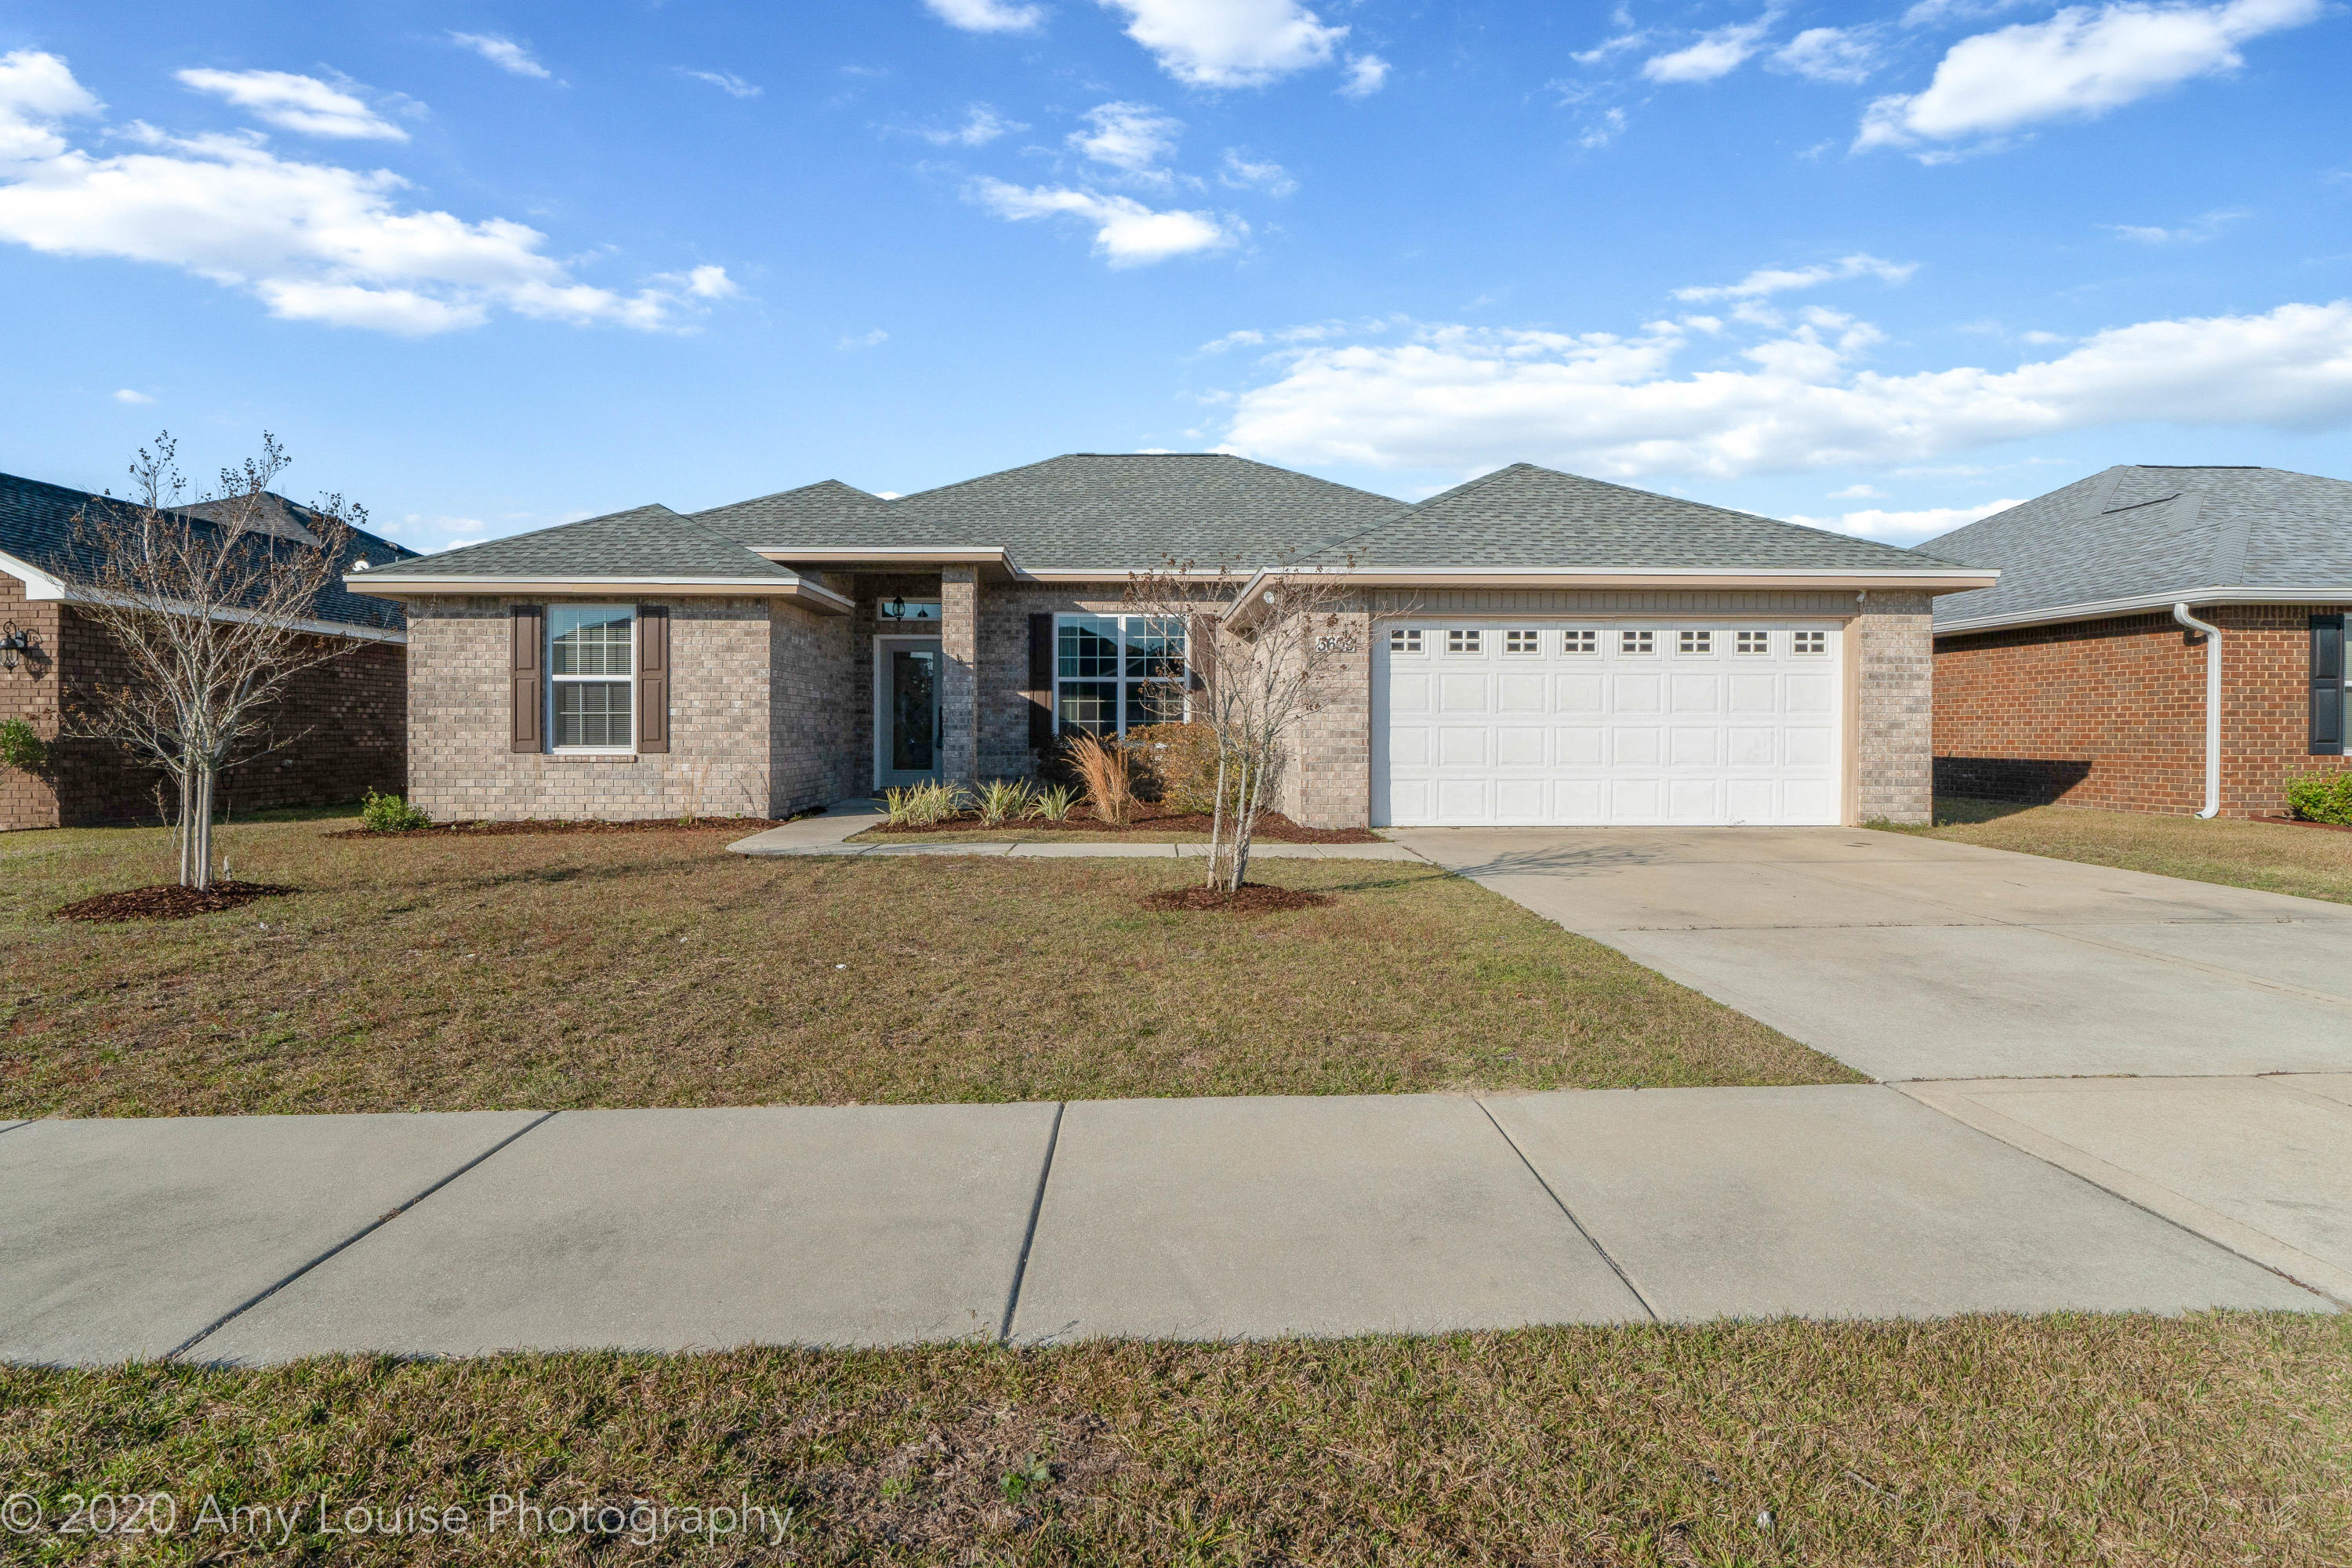 Welcome to this newer 4 bedroom POOL home located in a central neighborhood with sidewalks. This all brick home has a new roof, fresh paint, tall ceilings, wood flooring and wonderful finishes throughout! The home features a split floor plan with two bedrooms towards the front of the home, a 3rd additional bedroom tucked in the back of the home. On the other side of the kitchen is the master bedroom with new carpet and gorgeous master bathroom!The kitchen and open living area enjoys beautiful views of the private backyard with gunite pool. The kitchen has stainless steel appliances, white cabinets, granite counters and updated lighting. The living room has fabulous wood flooring, detailed trim work and neutral paint.